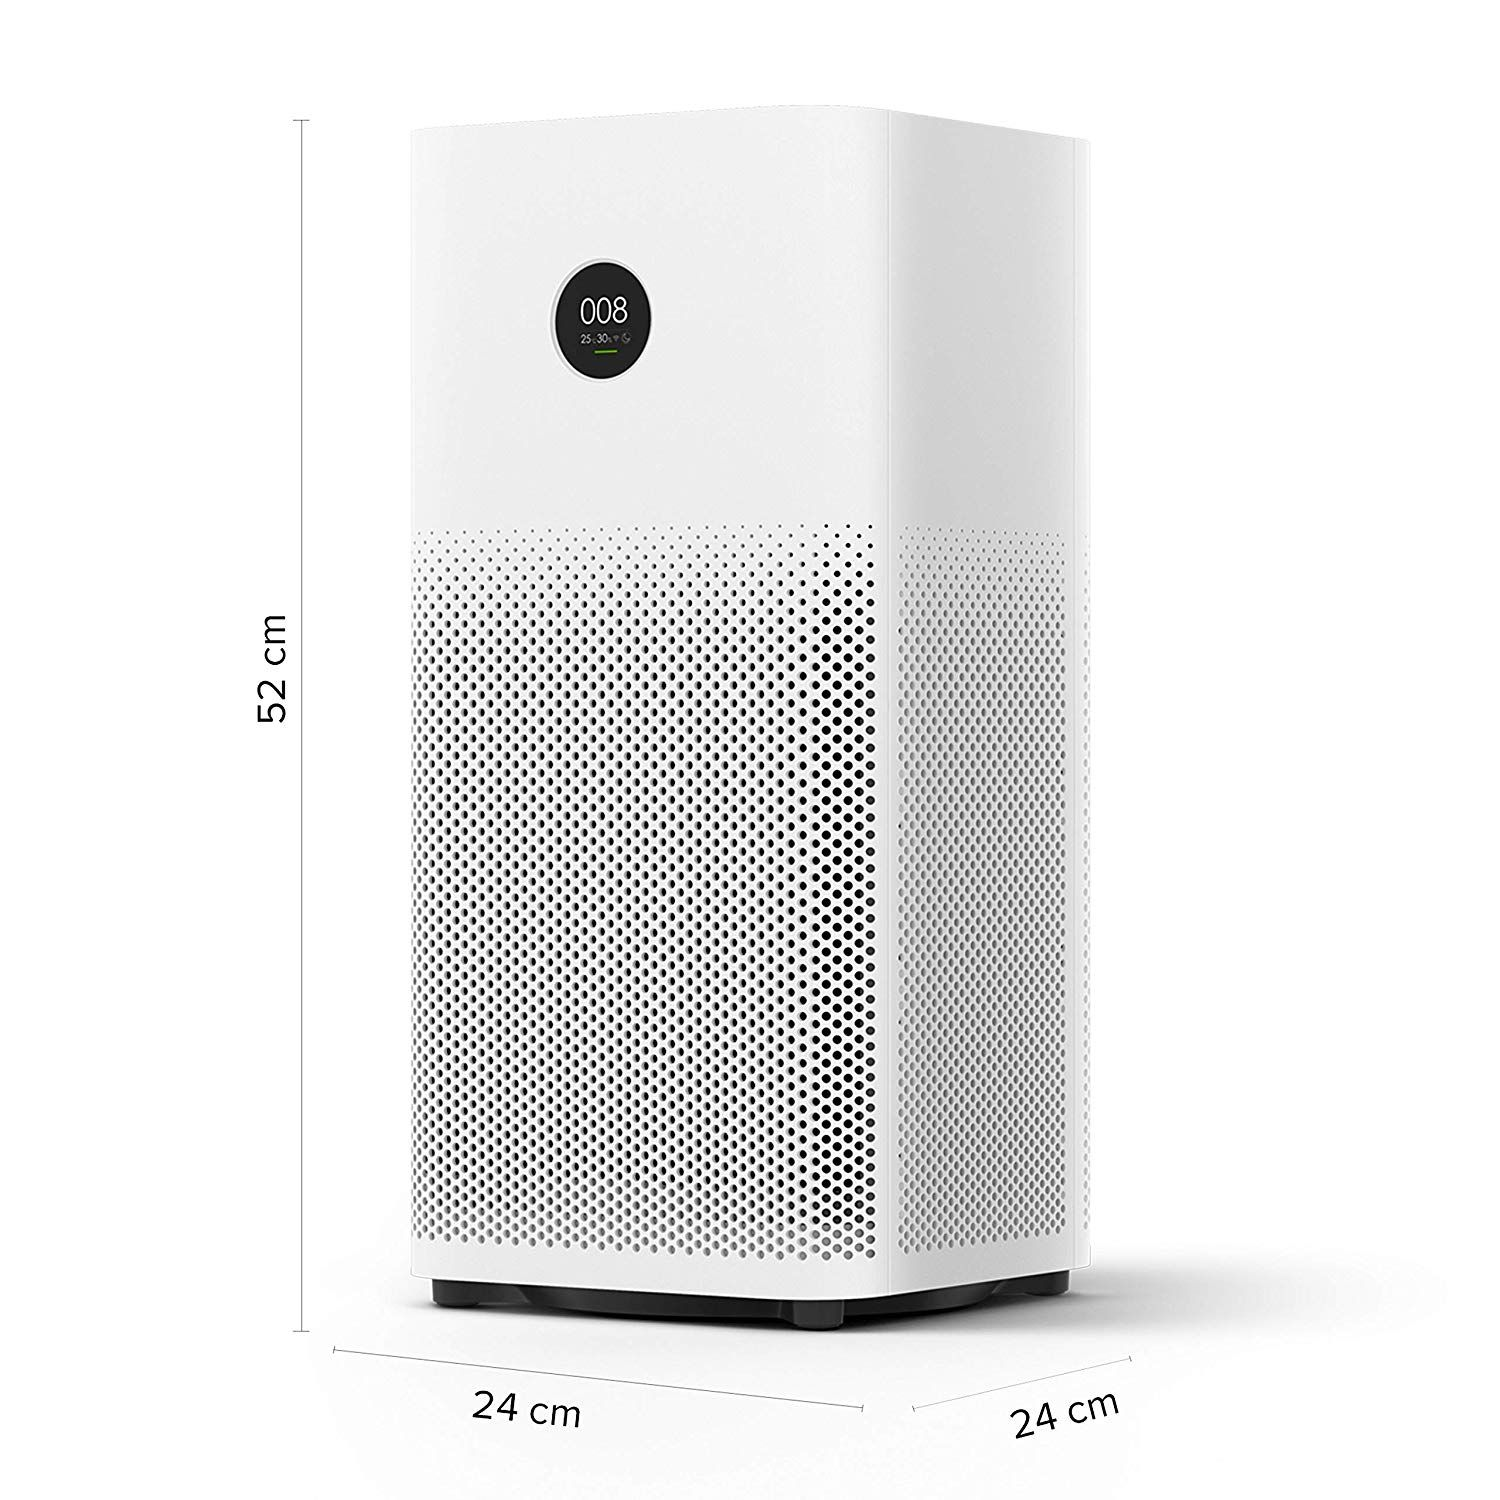 Pin by AllAbouttechno on Gadgets Air purifier, Gadgets